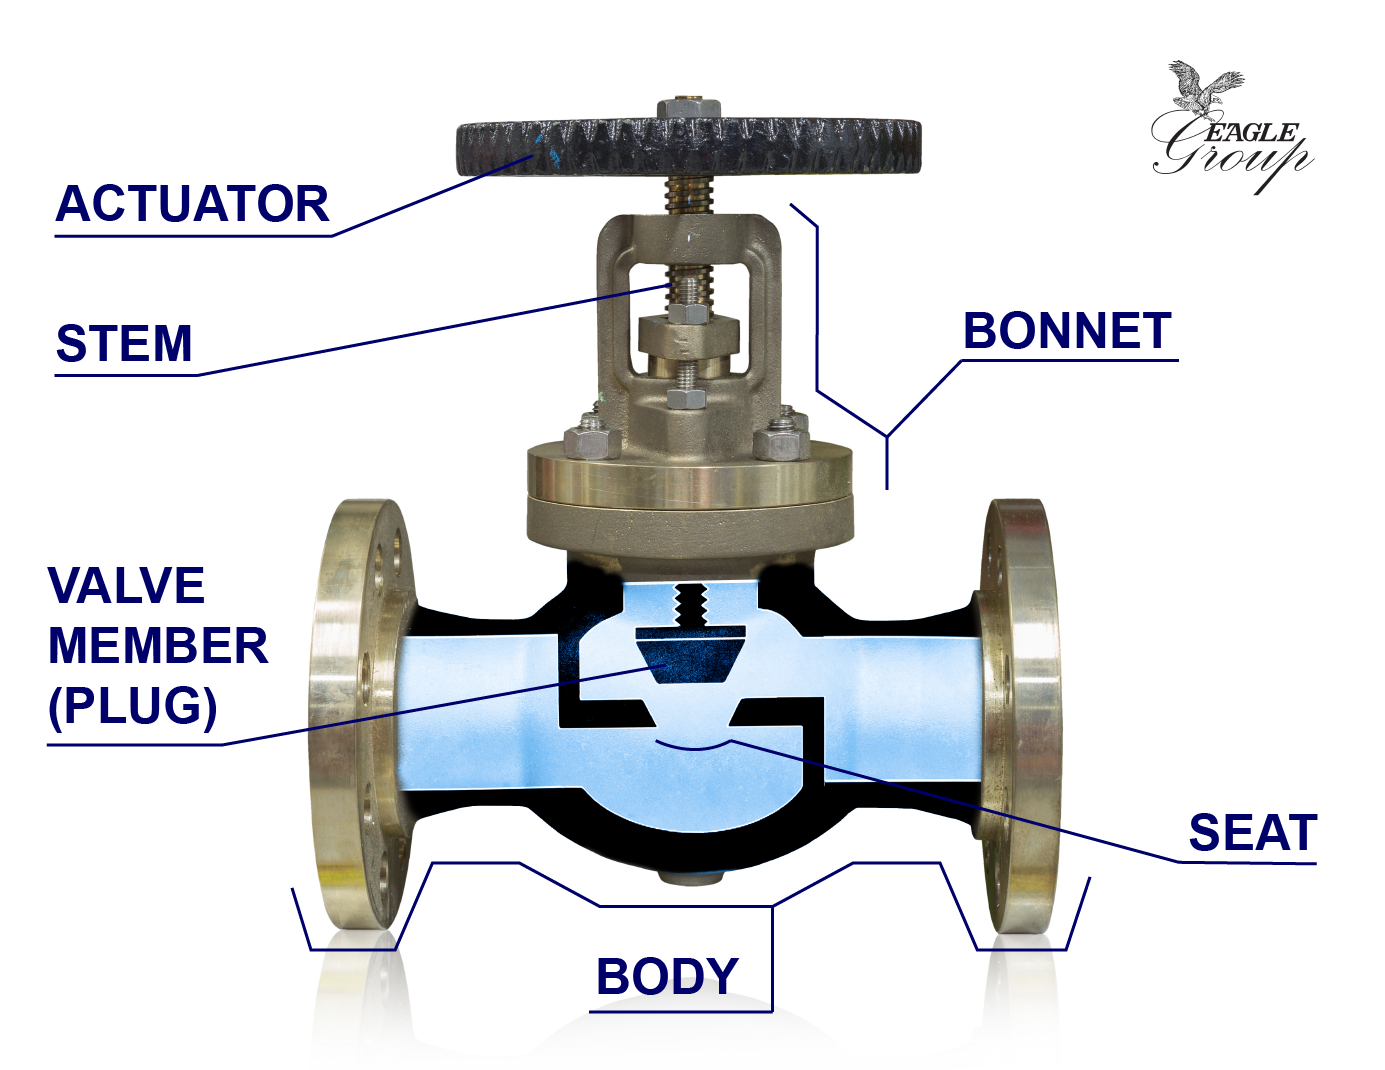 Anatomy of an industrial valve - Globe valve with labeled components